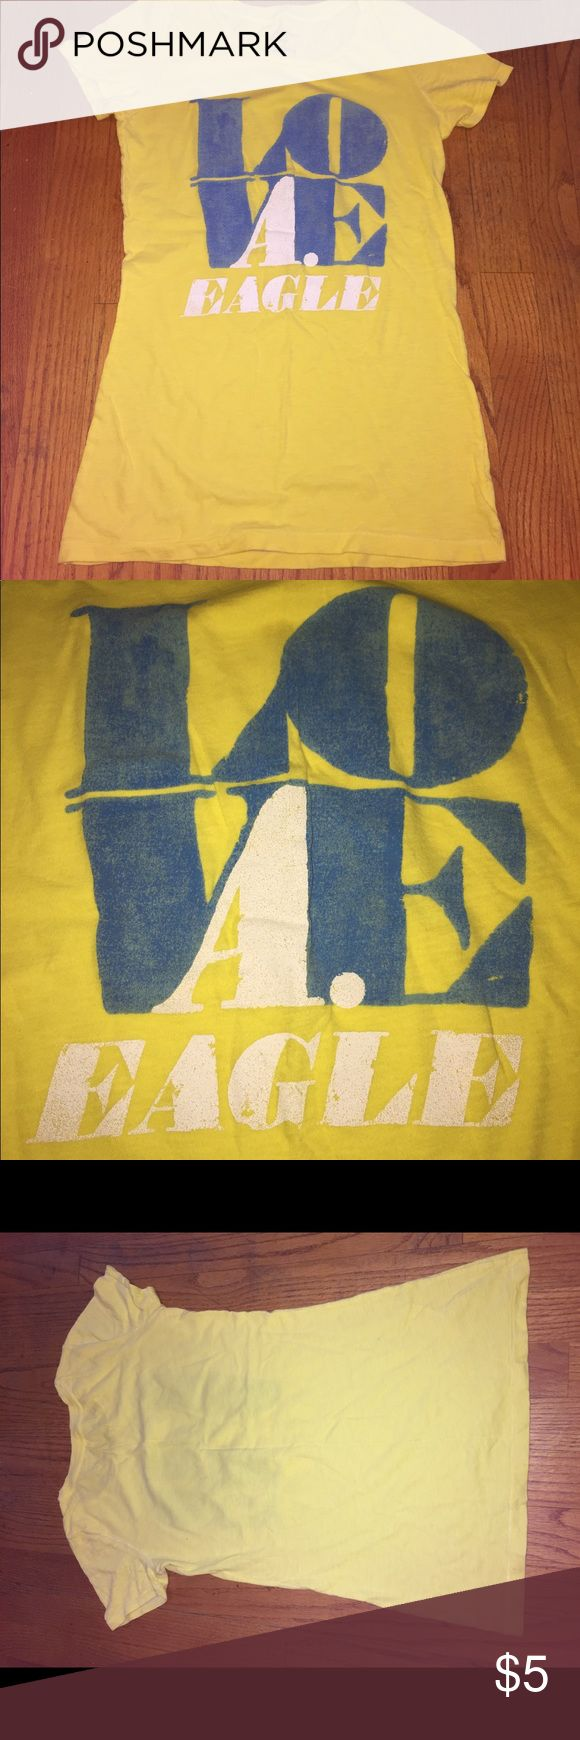 American Eagle Tshirt Size Small American Eagle Tshirt  Size Small  Great pre-owned condition  No flaws All my items come from a smoke and pet free home Thanks for looking and please feel free to contact me with any questions you might have American Eagle Outfitters Tops Tees - Short Sleeve